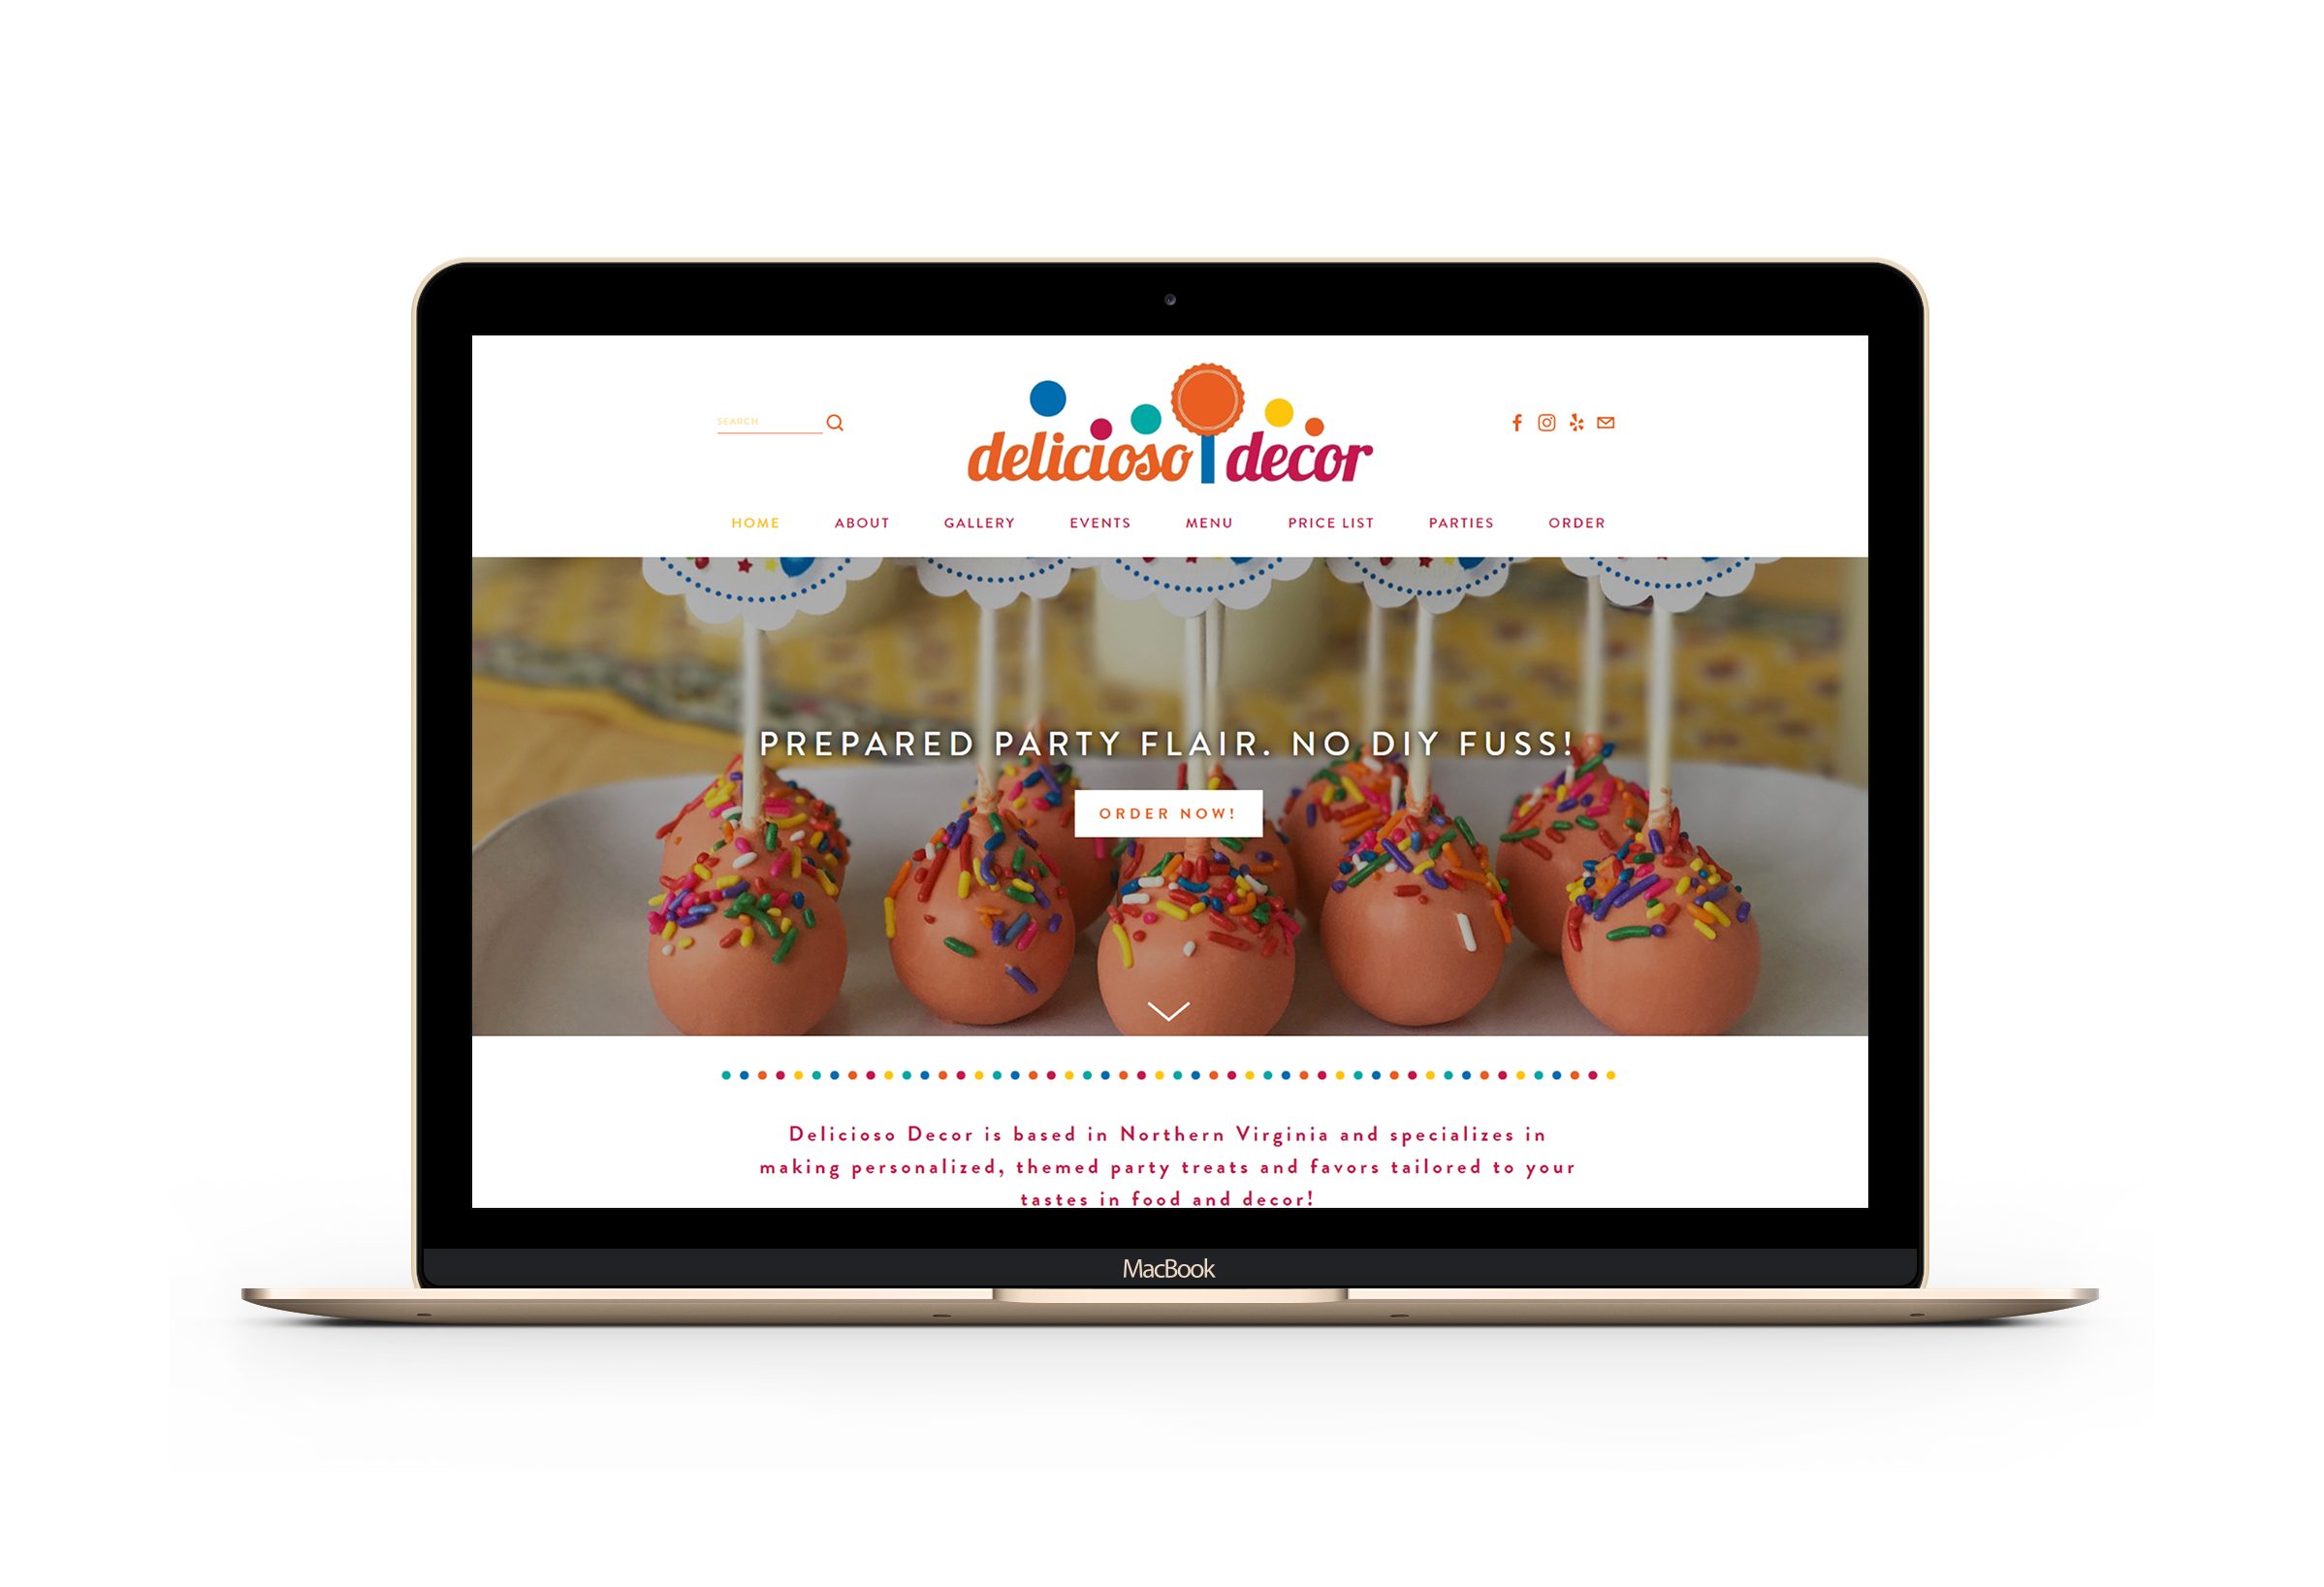 Having Kirsty create my company website is the BEST investment I've ever made! Kirsty is an amazing designer and intuition and patience are only matched by her professionalism and knowledge of the market. - - Elizabeth, Delicioso Decor